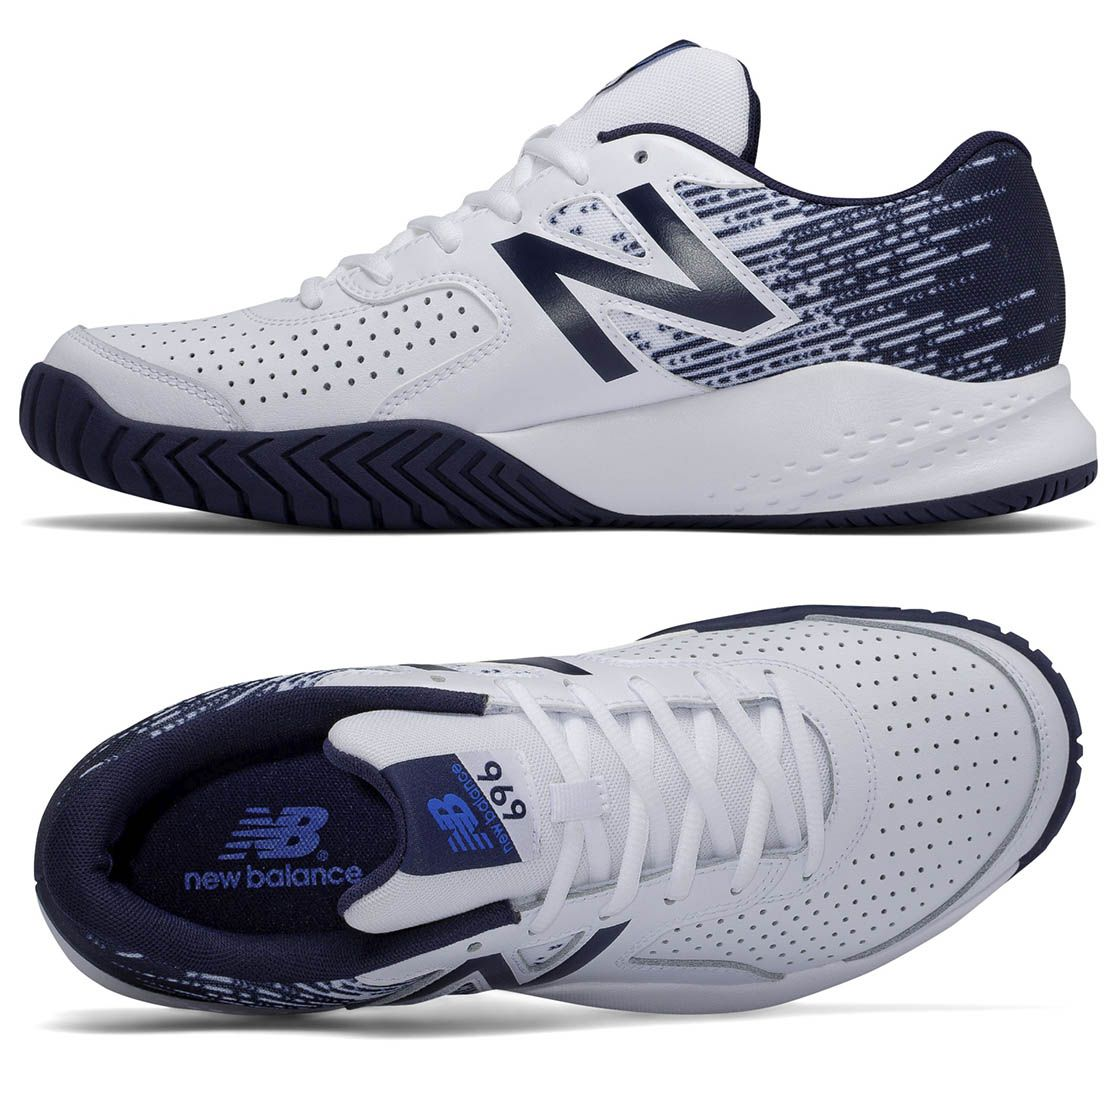 New Balance  Tennis Shoes Review